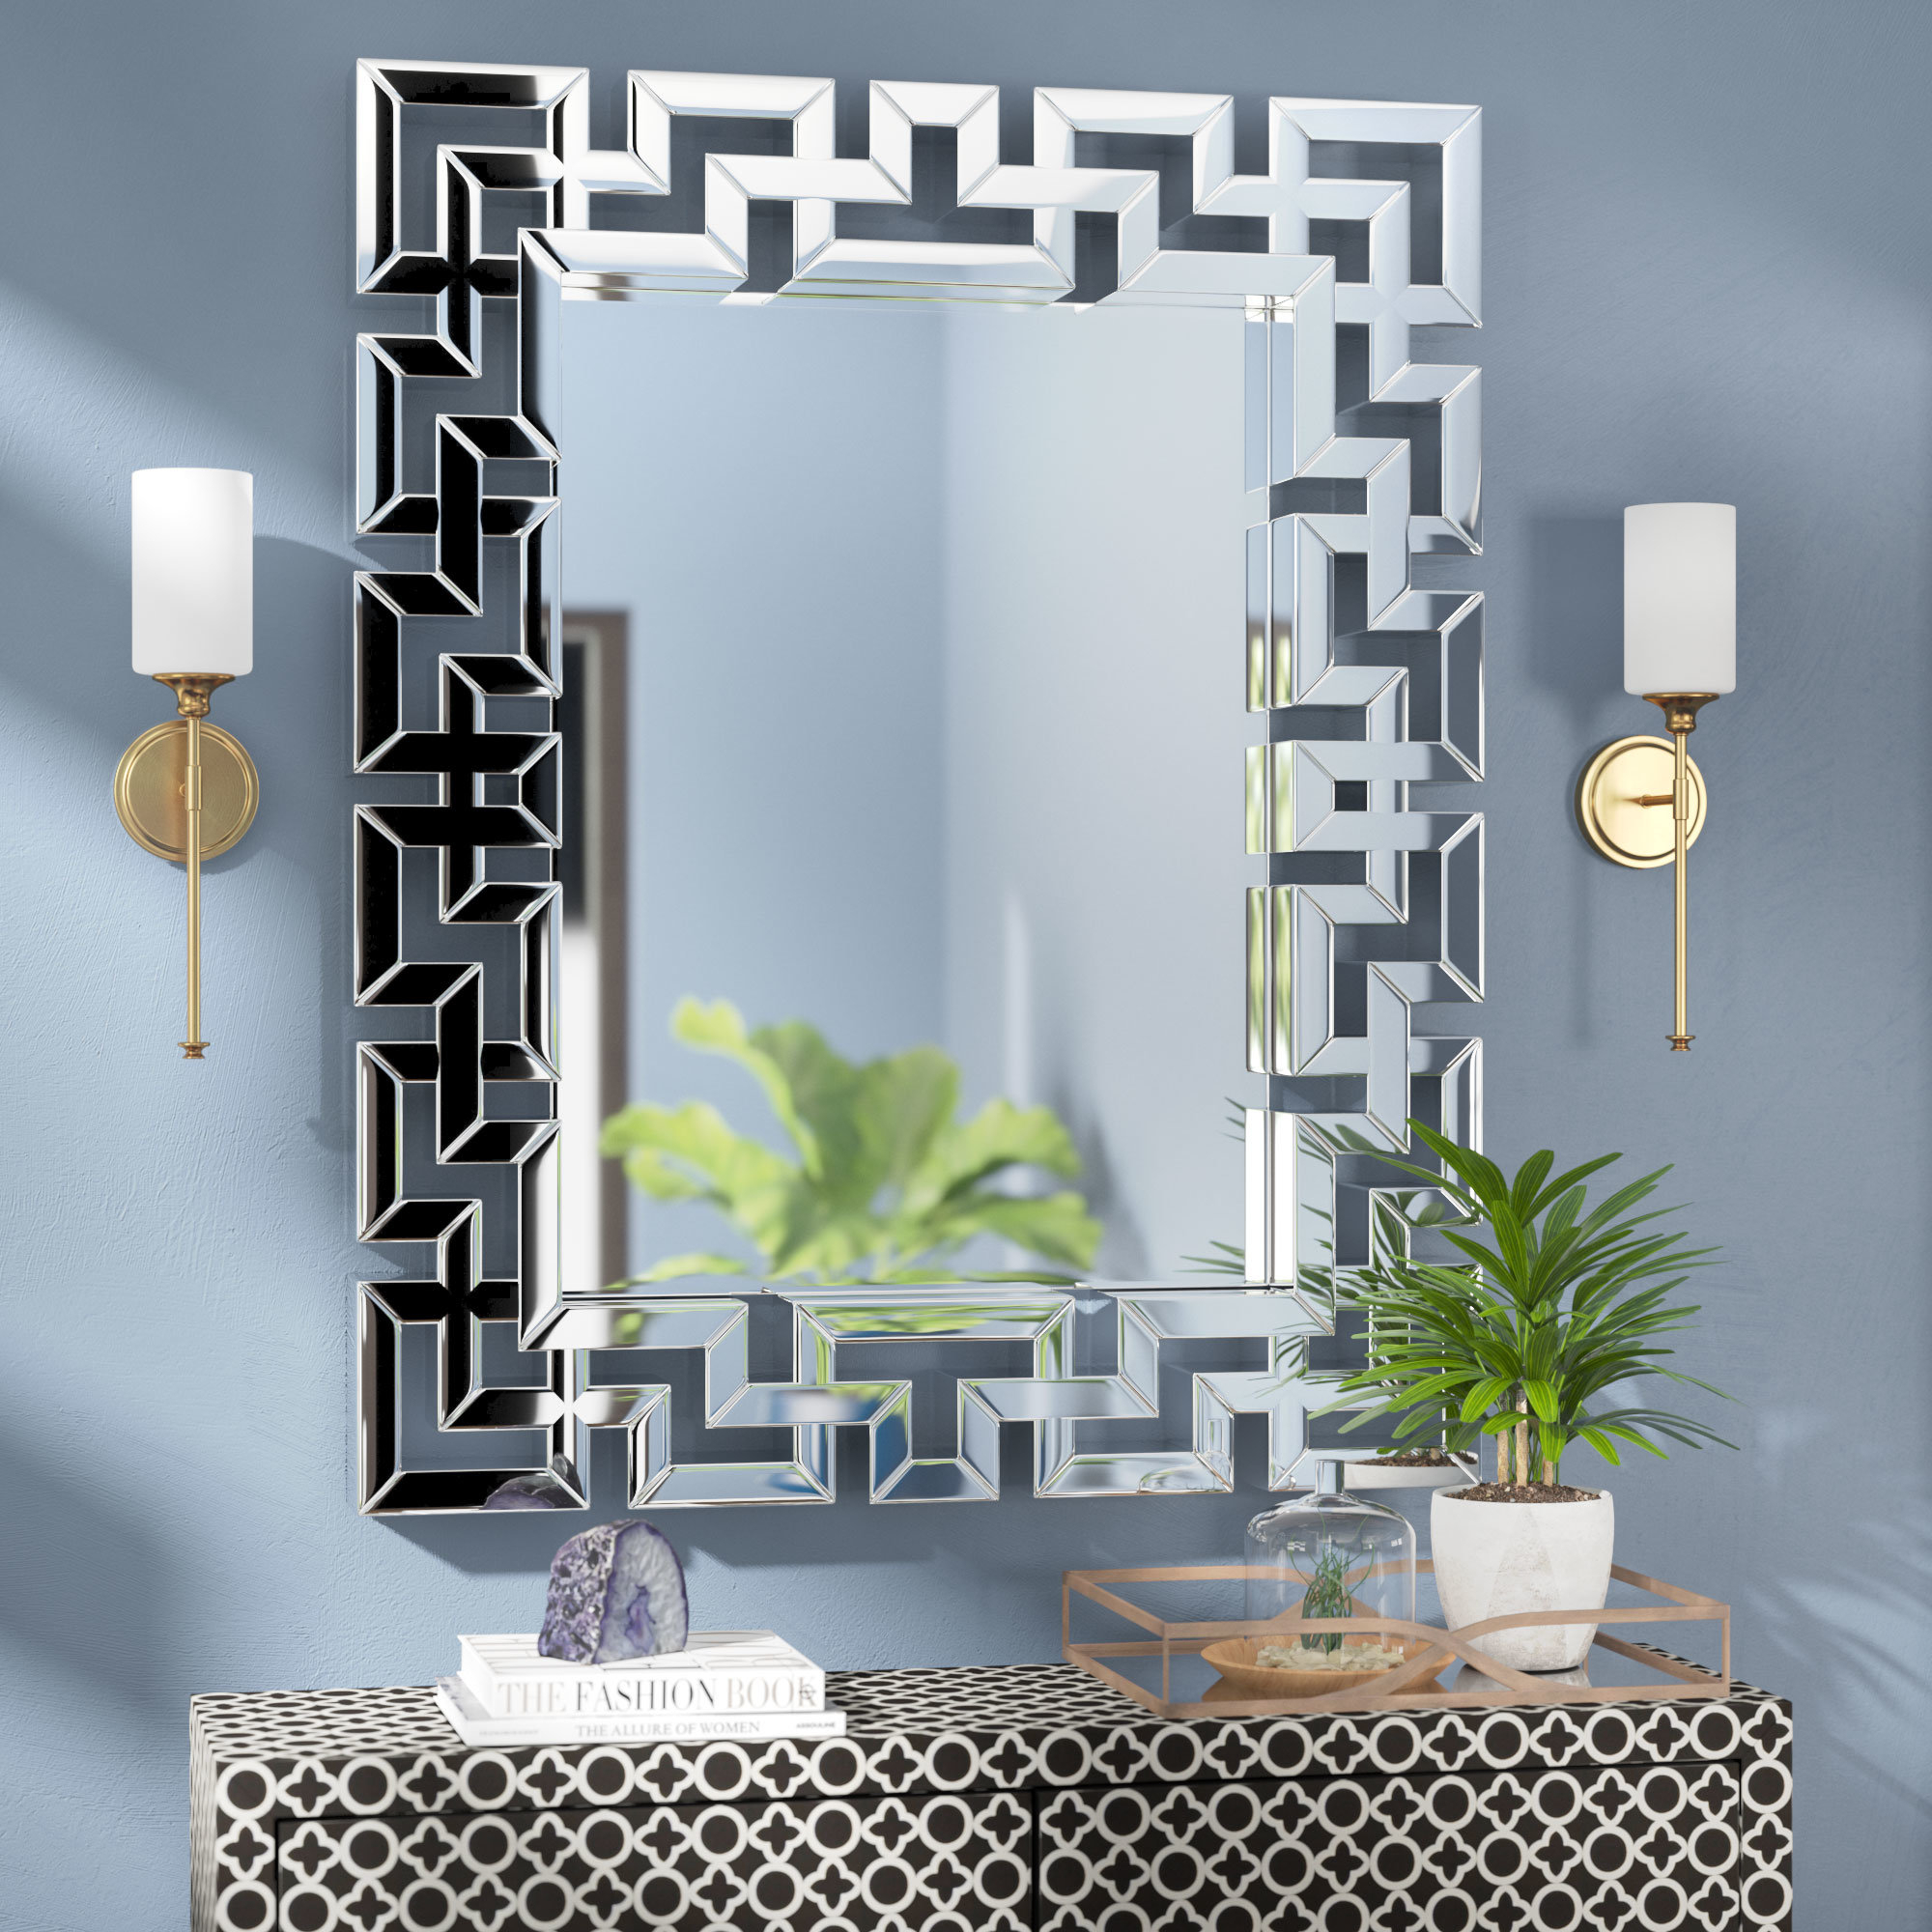 Wells Rectangular Mirror | Wayfair With Regard To Pennsburg Rectangle Wall Mirrors (Image 18 of 20)